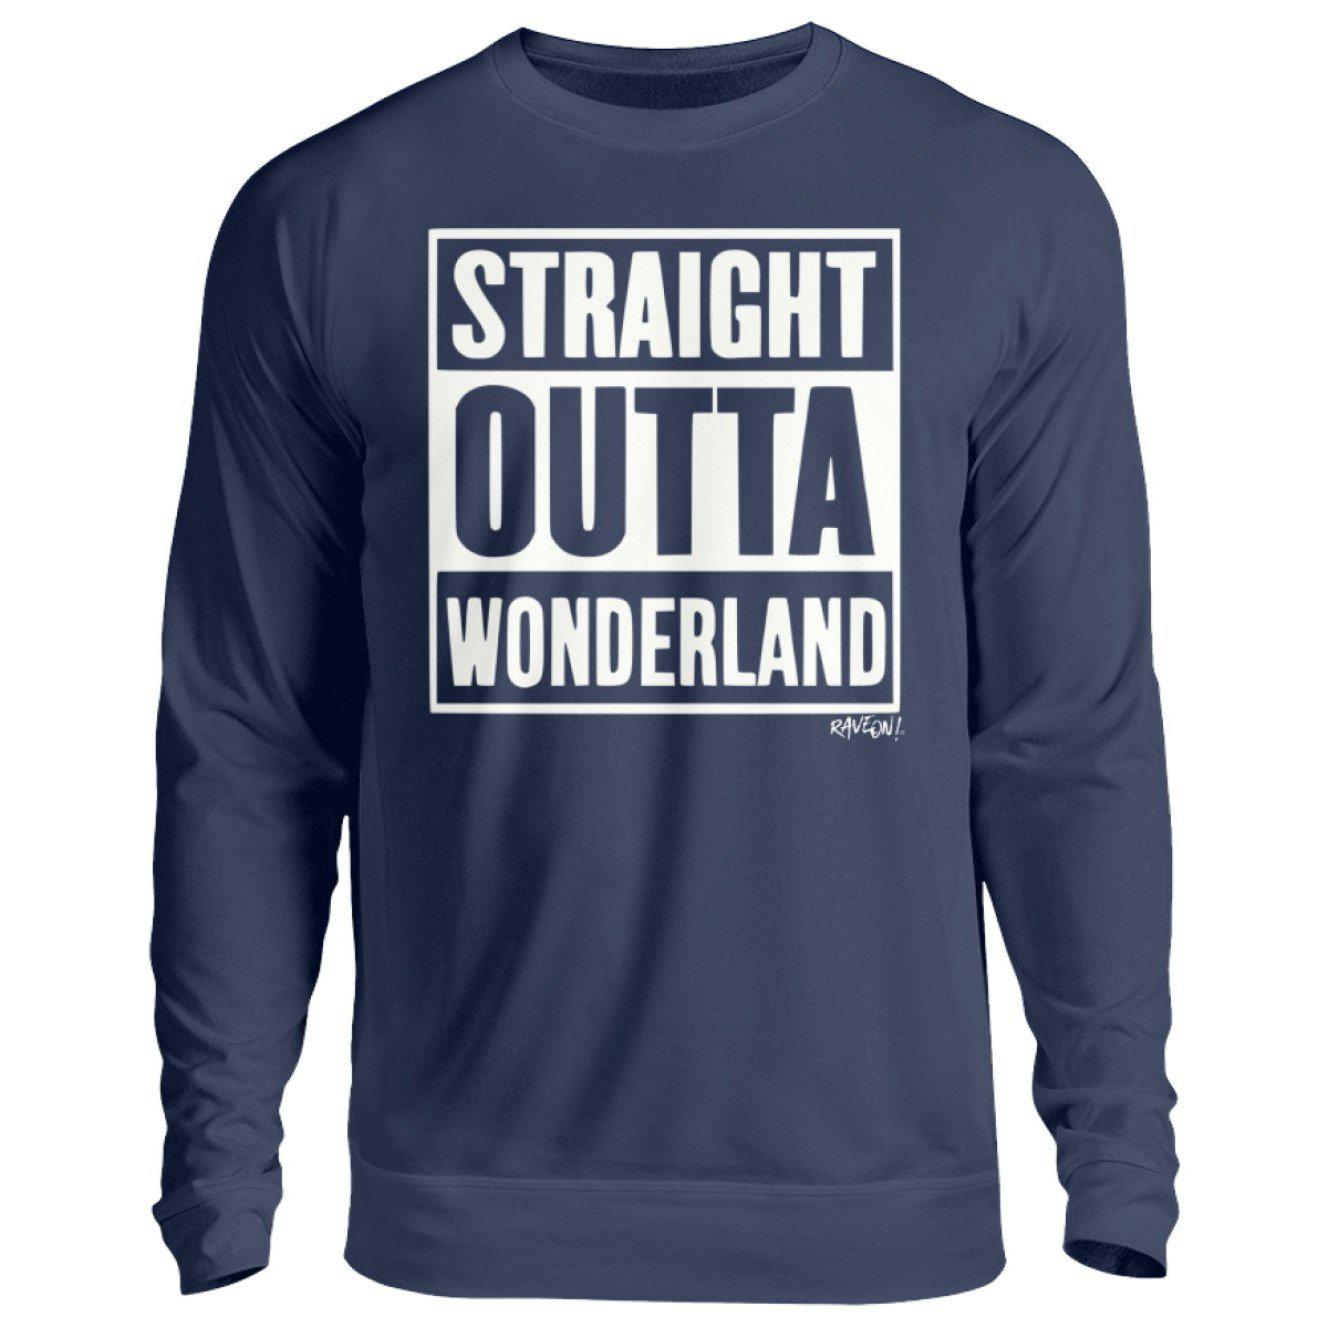 STRAIGHT OUTTA WONDERLAND black - Rave On!® - Unisex Pullover Unisex Sweatshirt New French Navy / S - Rave On!® der Club & Techno Szene Shop für Coole Junge Mode Streetwear Style & Fashion Outfits + Sexy Festival 420 Stuff